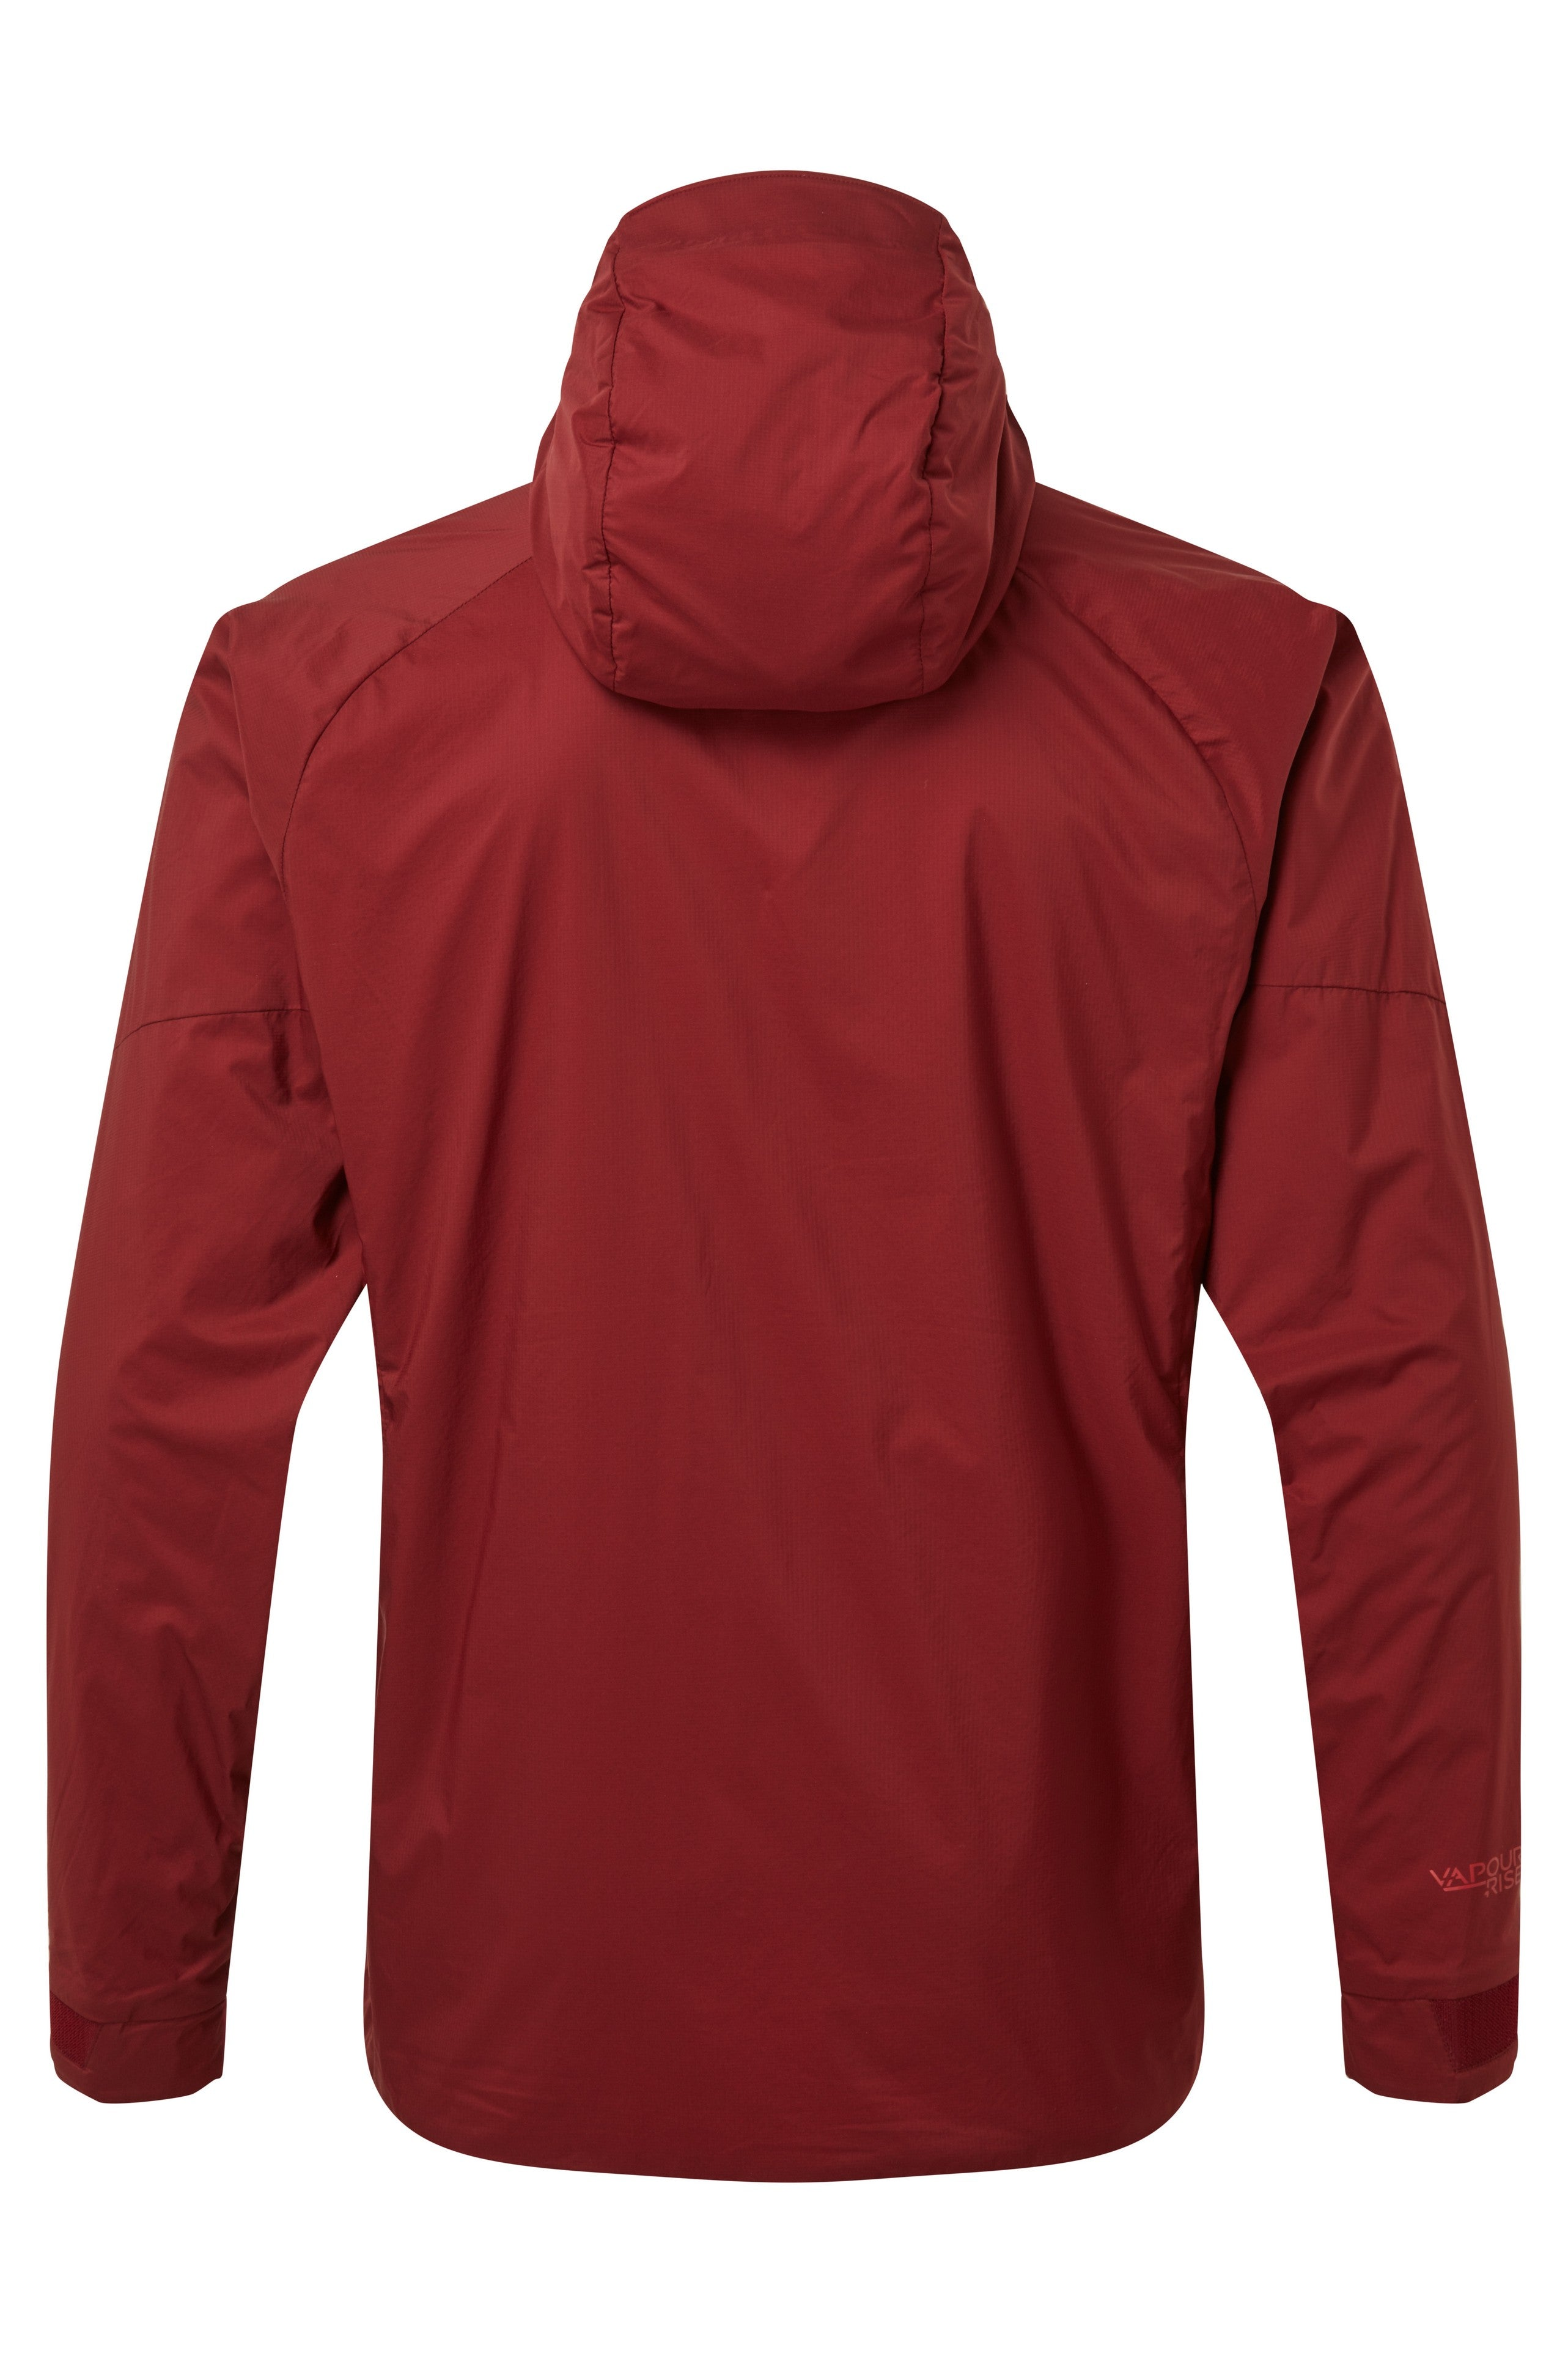 Rab VR Summit Jacket for Men in Oxblood Red